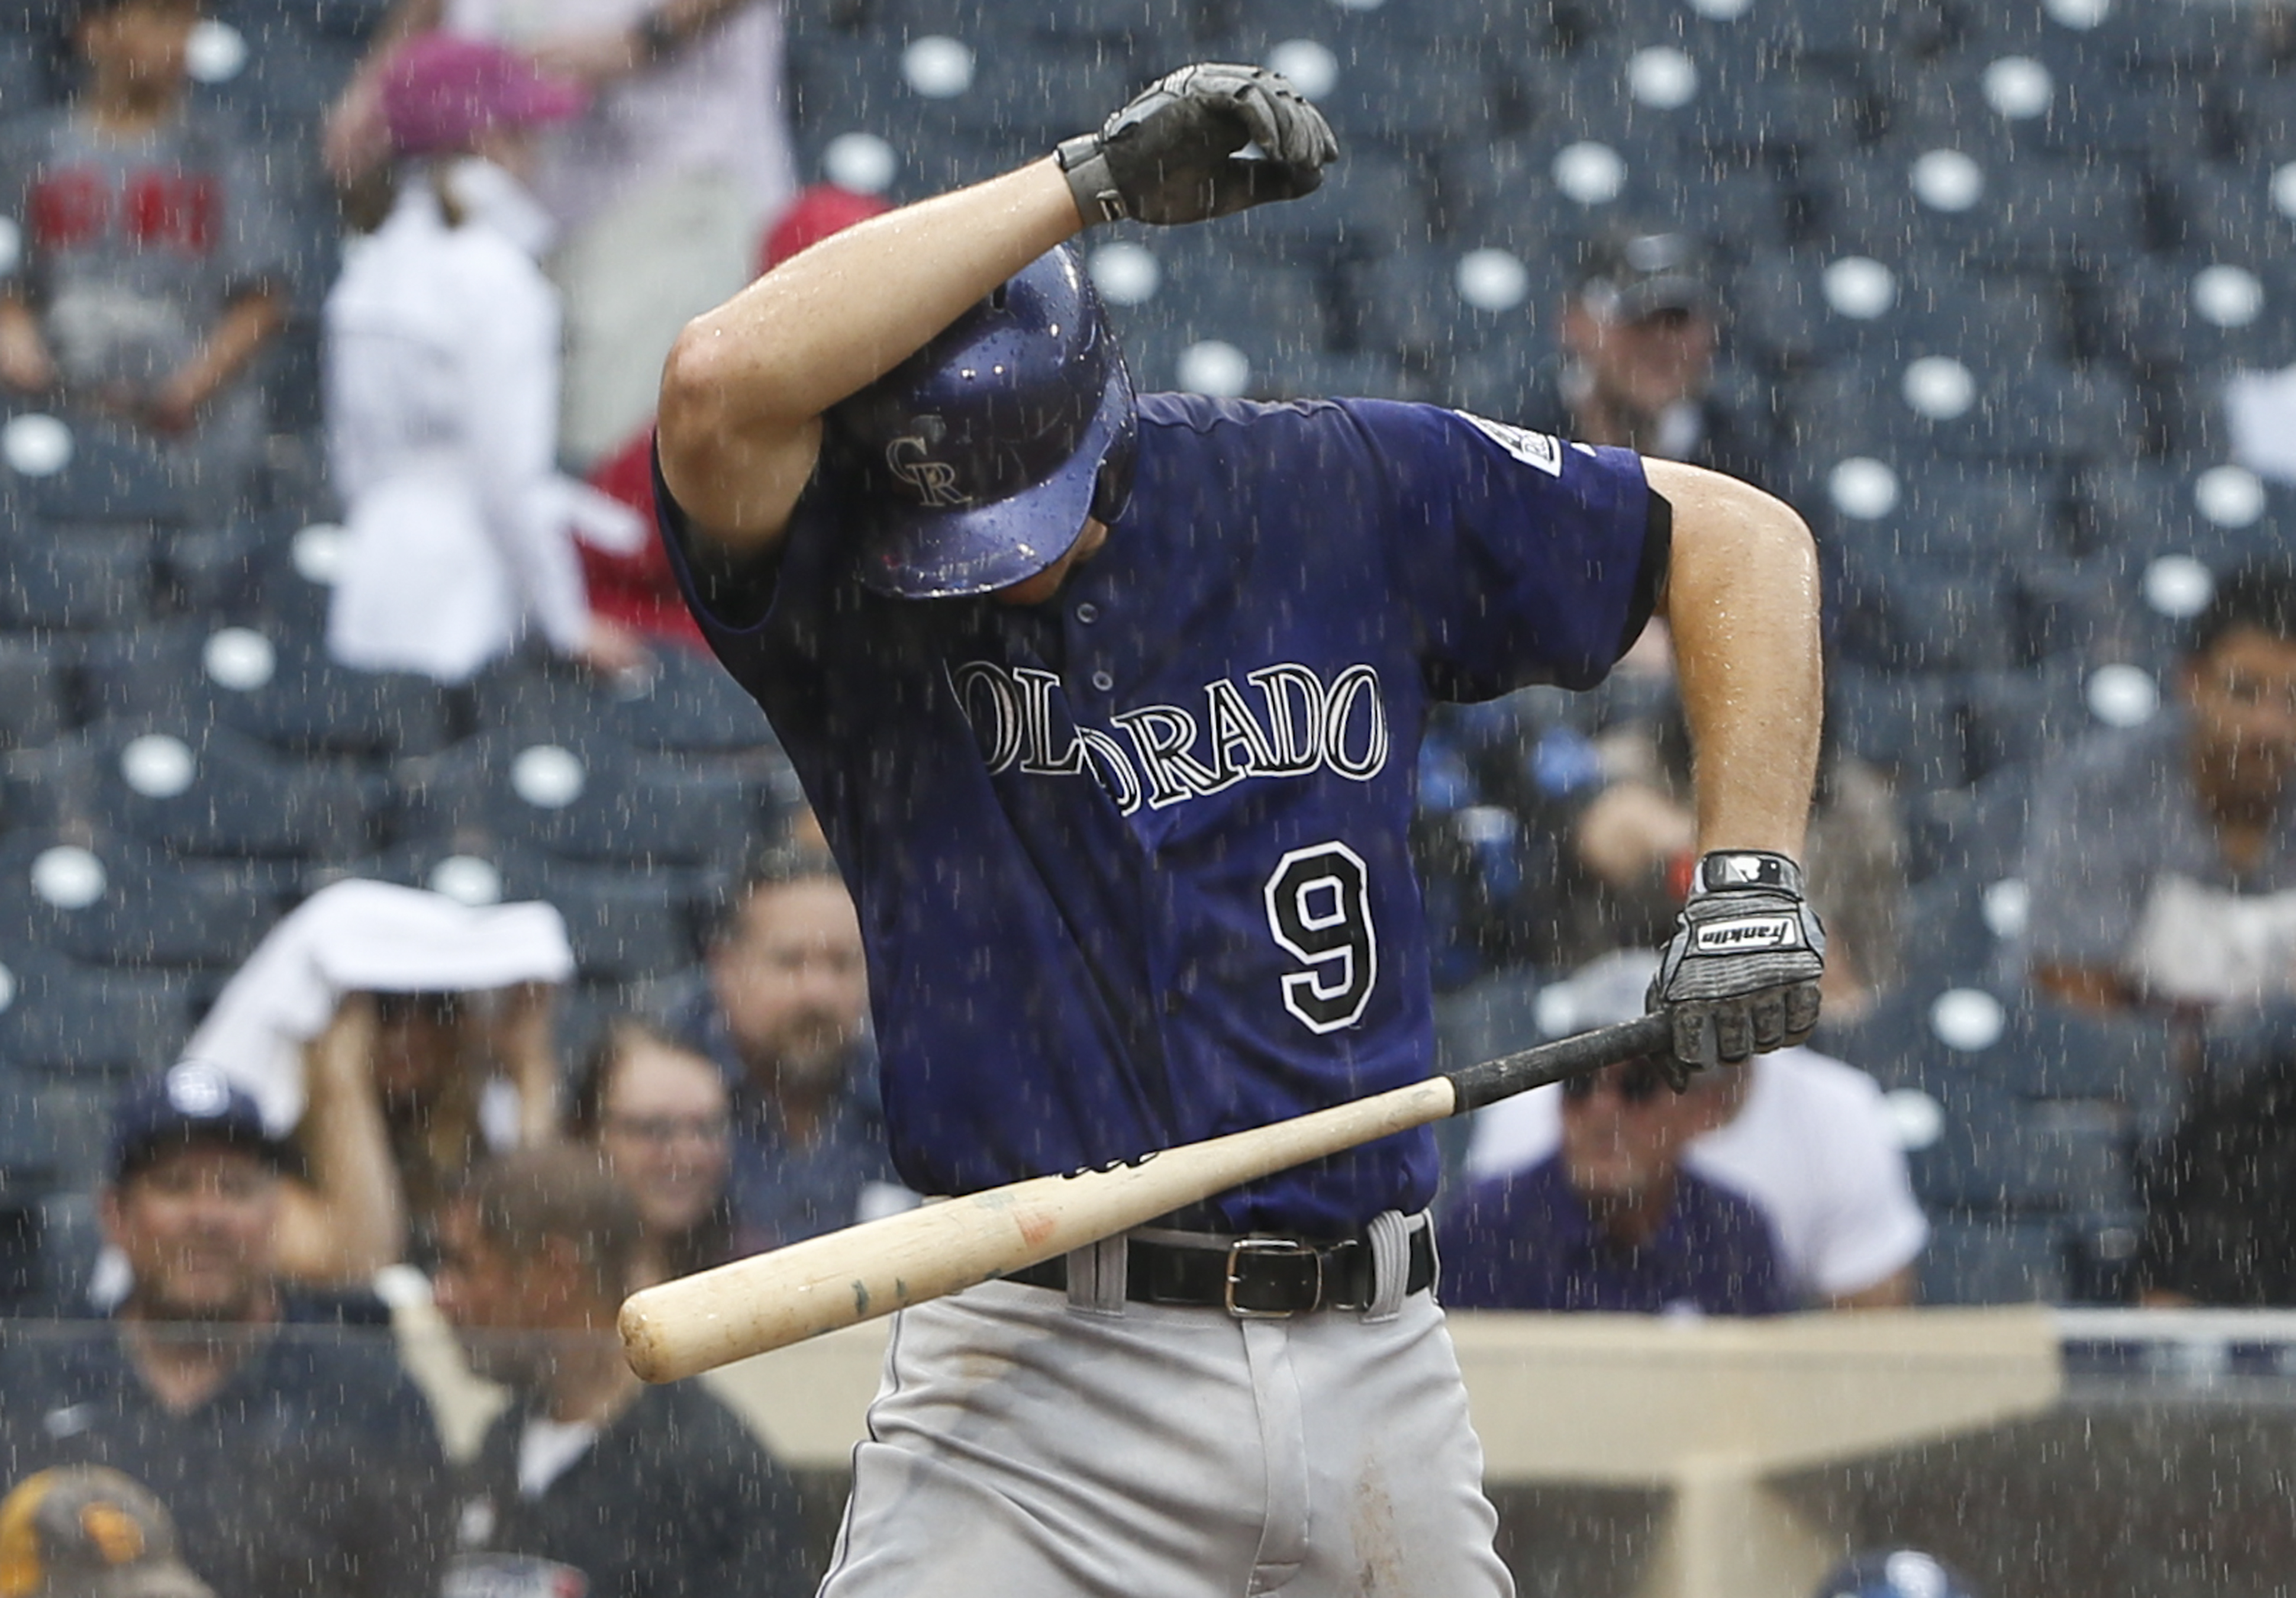 Colorado Rockies' DJ LeMahieu covers his head as he tries to bat in a rain storm in the fifth inning of a baseball game against the San Diego Padres Sunday, July 19, 2015, in San Diego.   (AP Photo/Lenny Ignelzi)